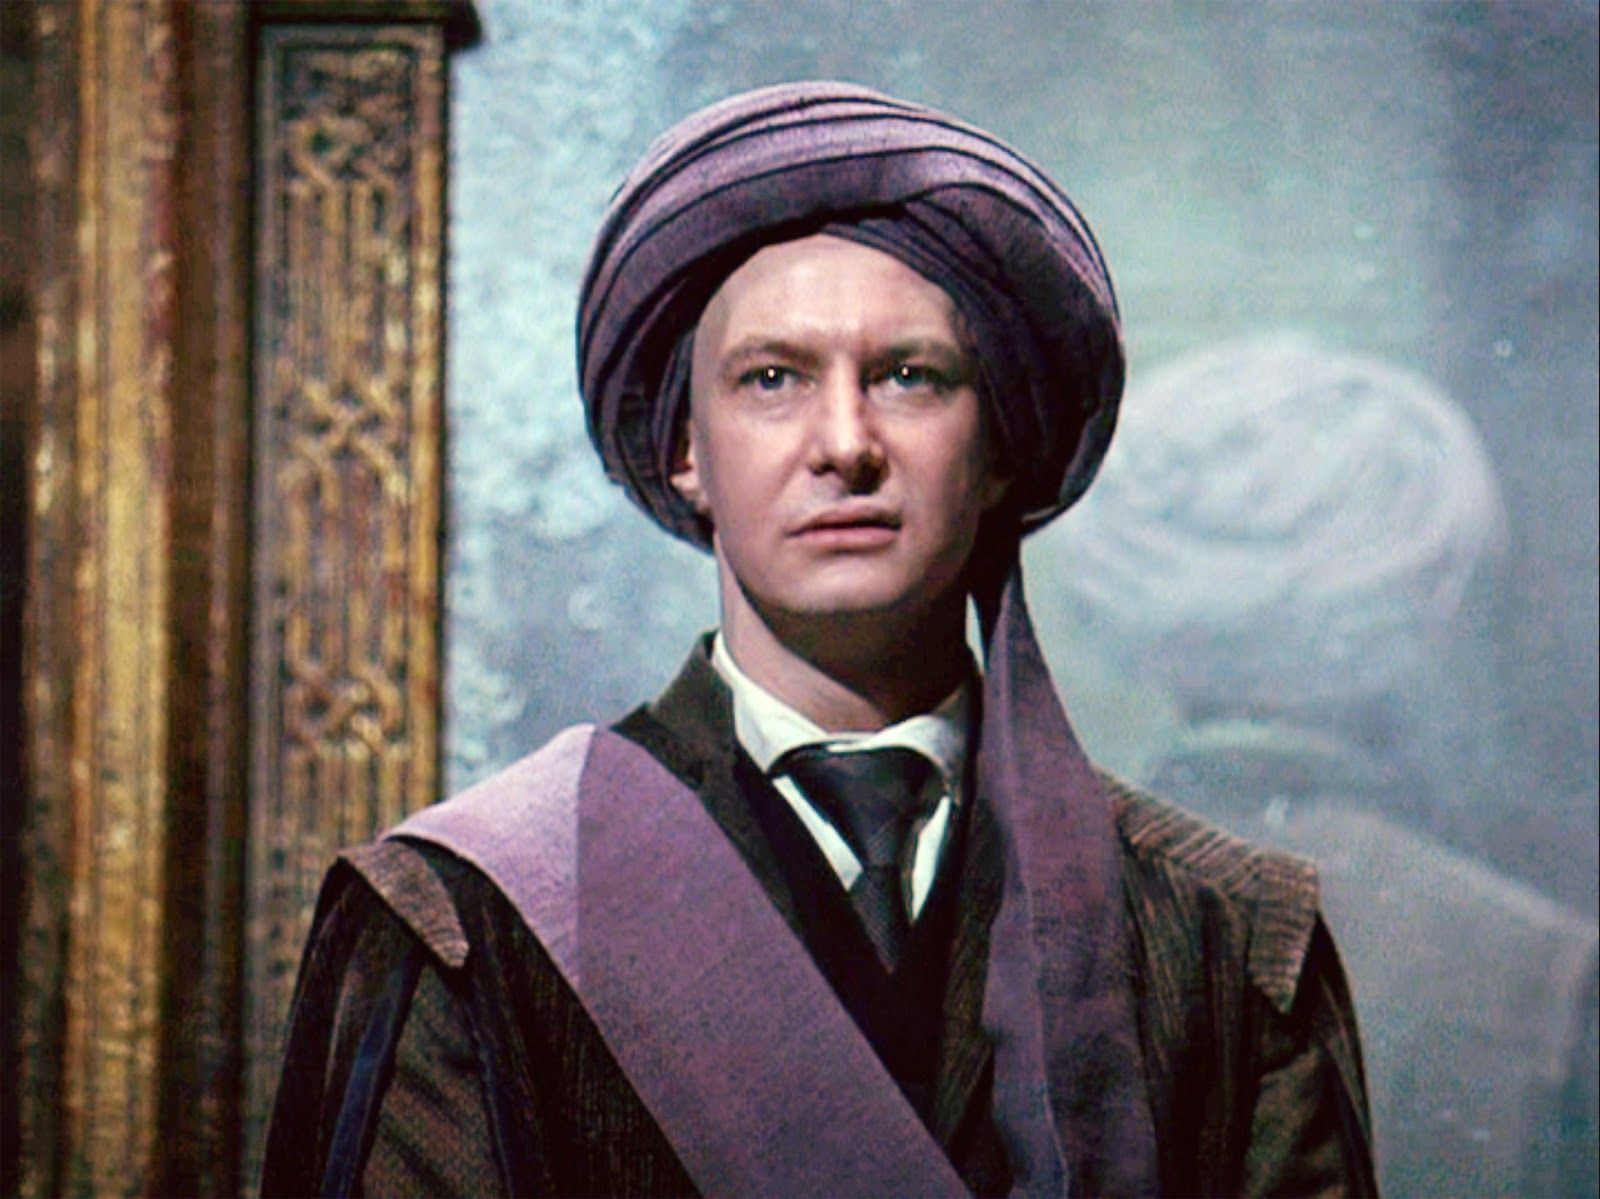 Professor Quirrell and the Mirror of Erised